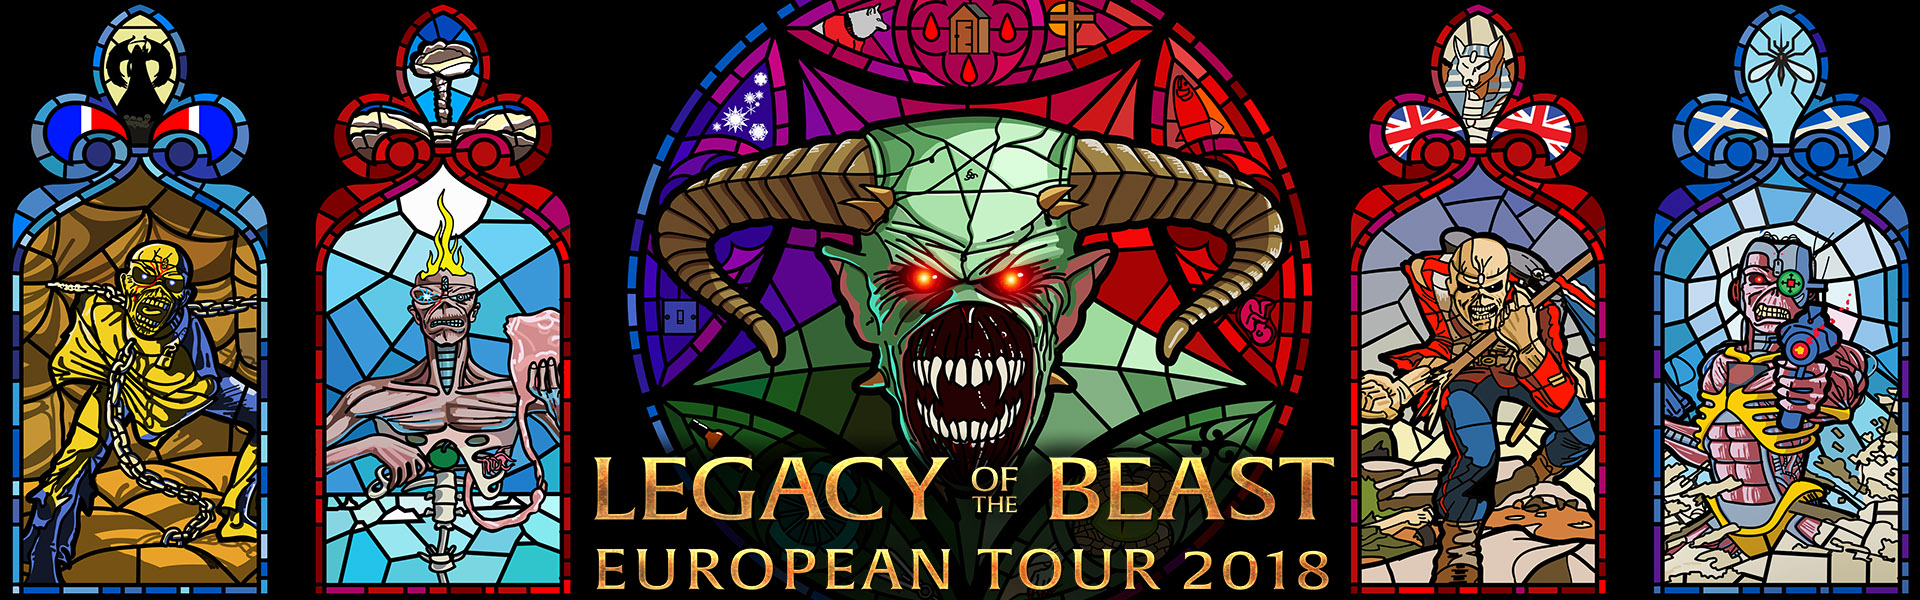 Legacy Of The Beast European Tour 2018 - ON SALE NOW